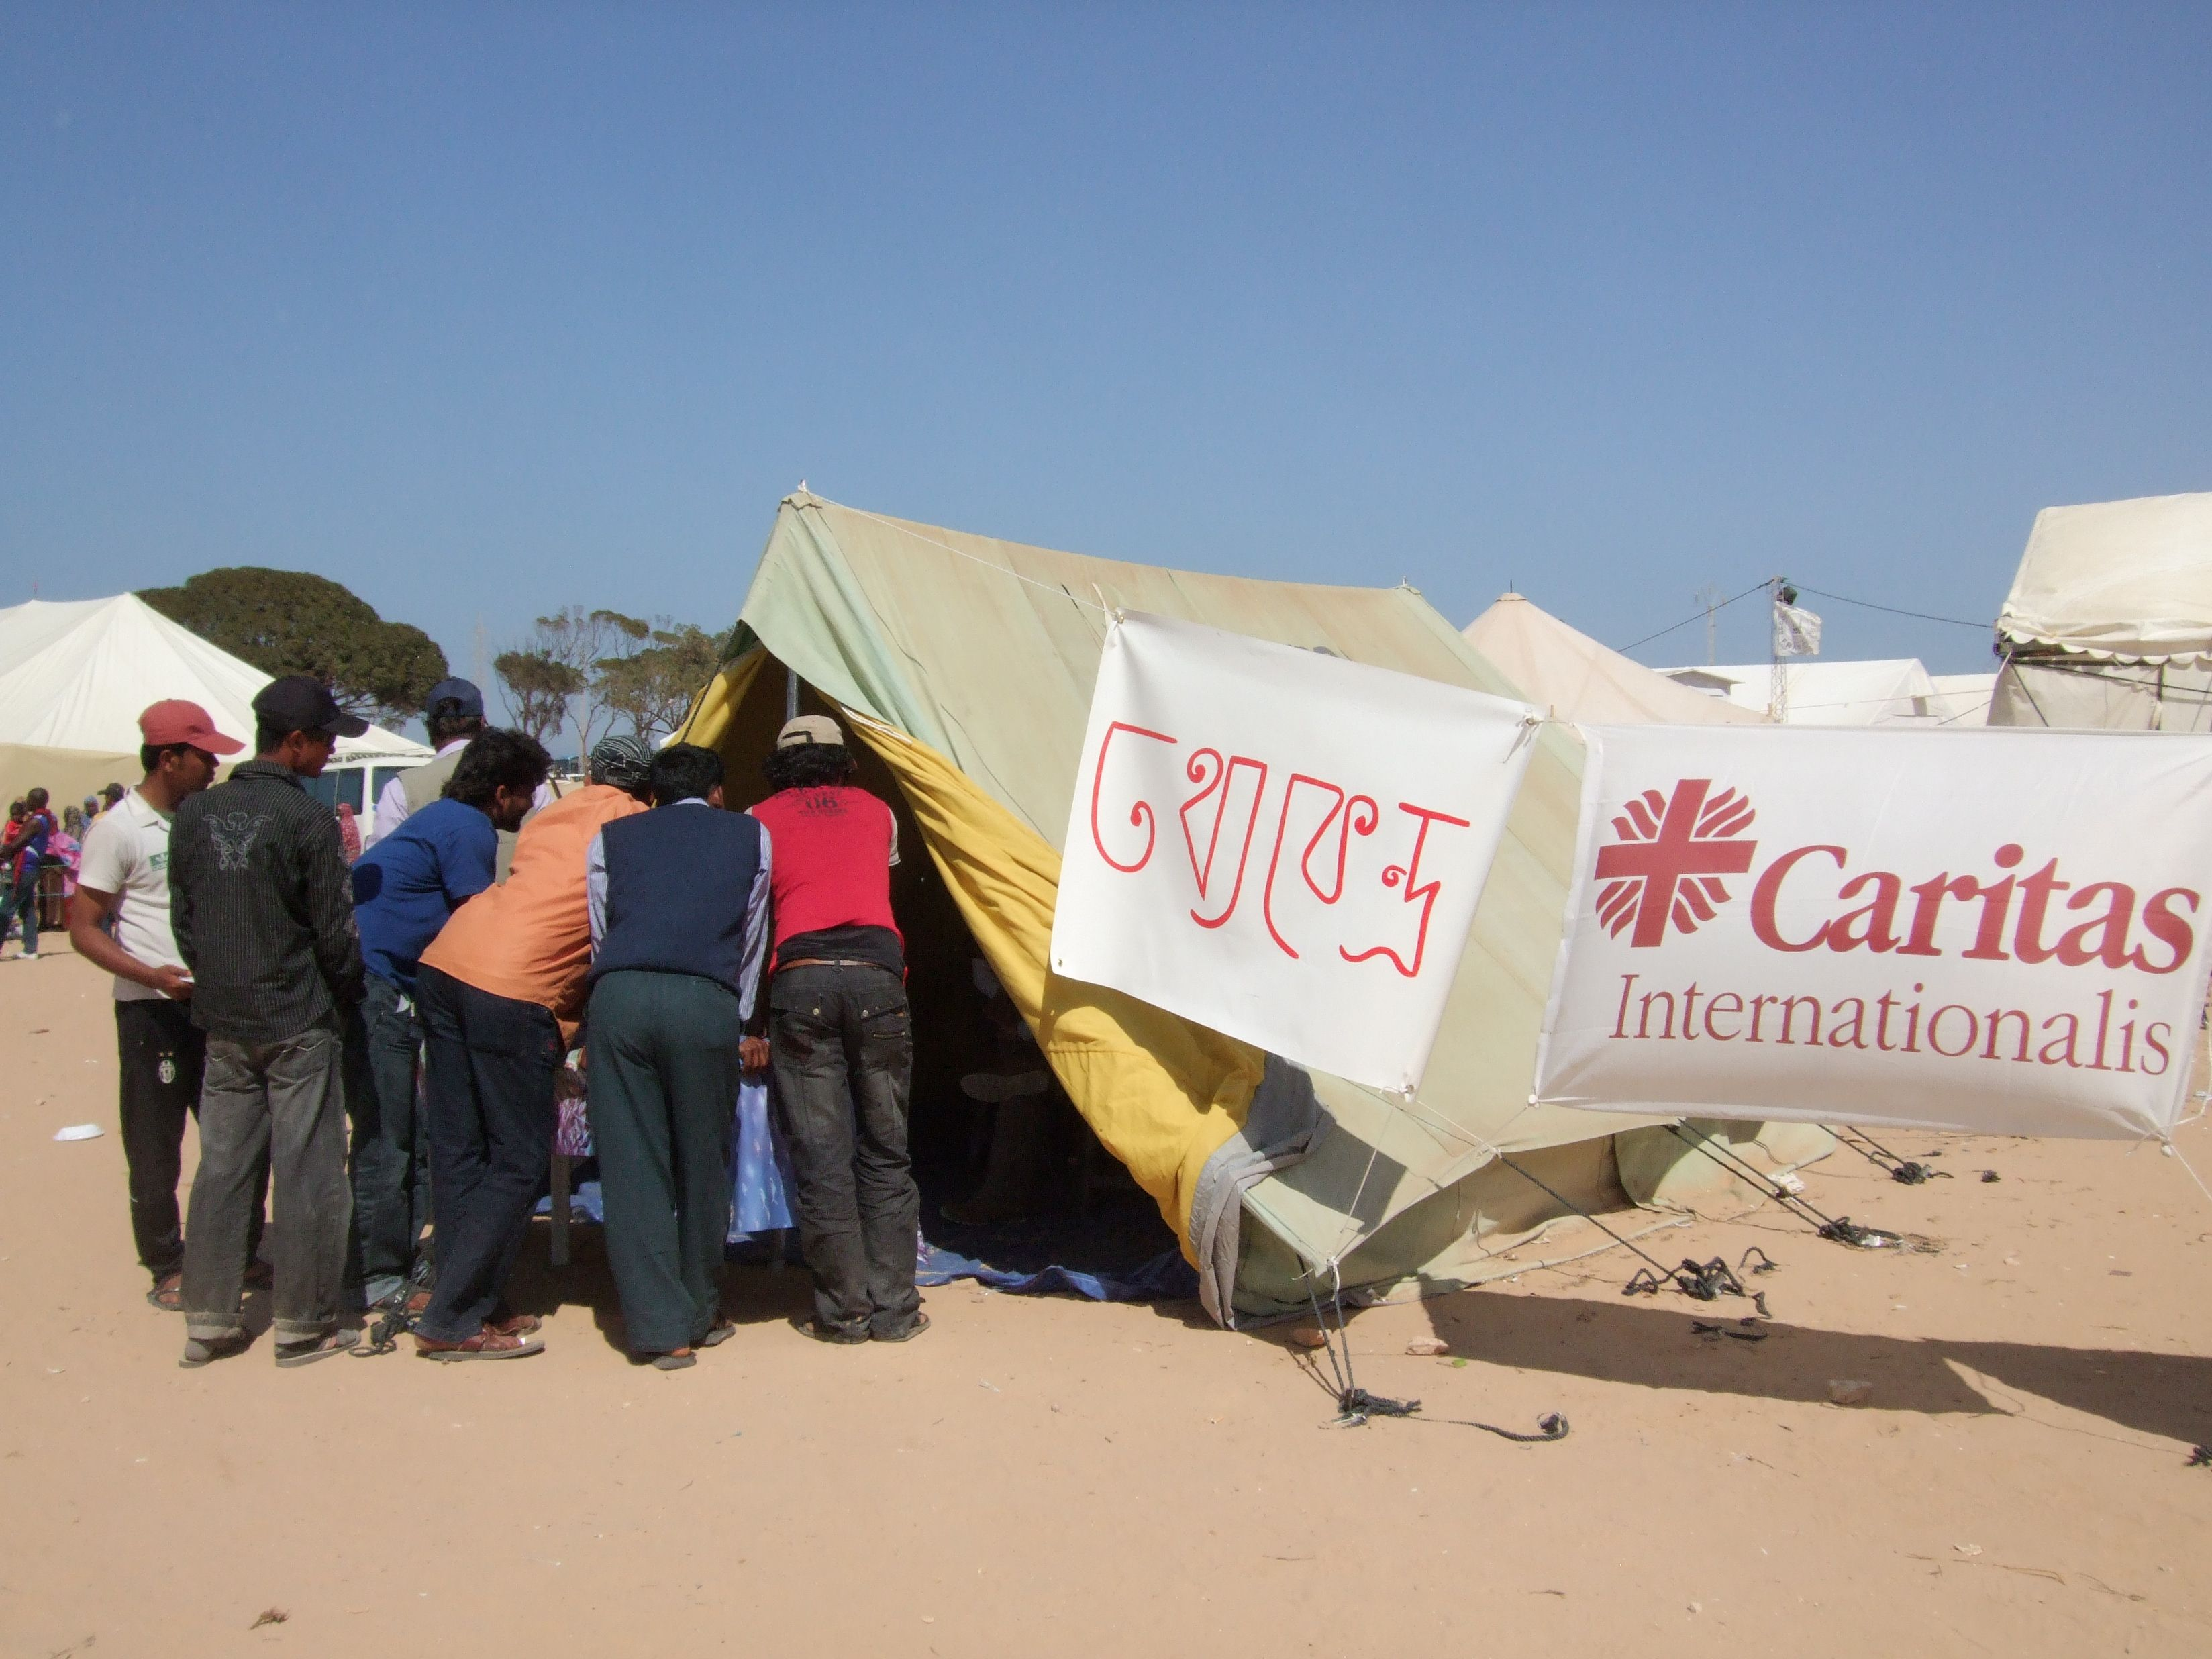 caritas-tent-at-the-camp